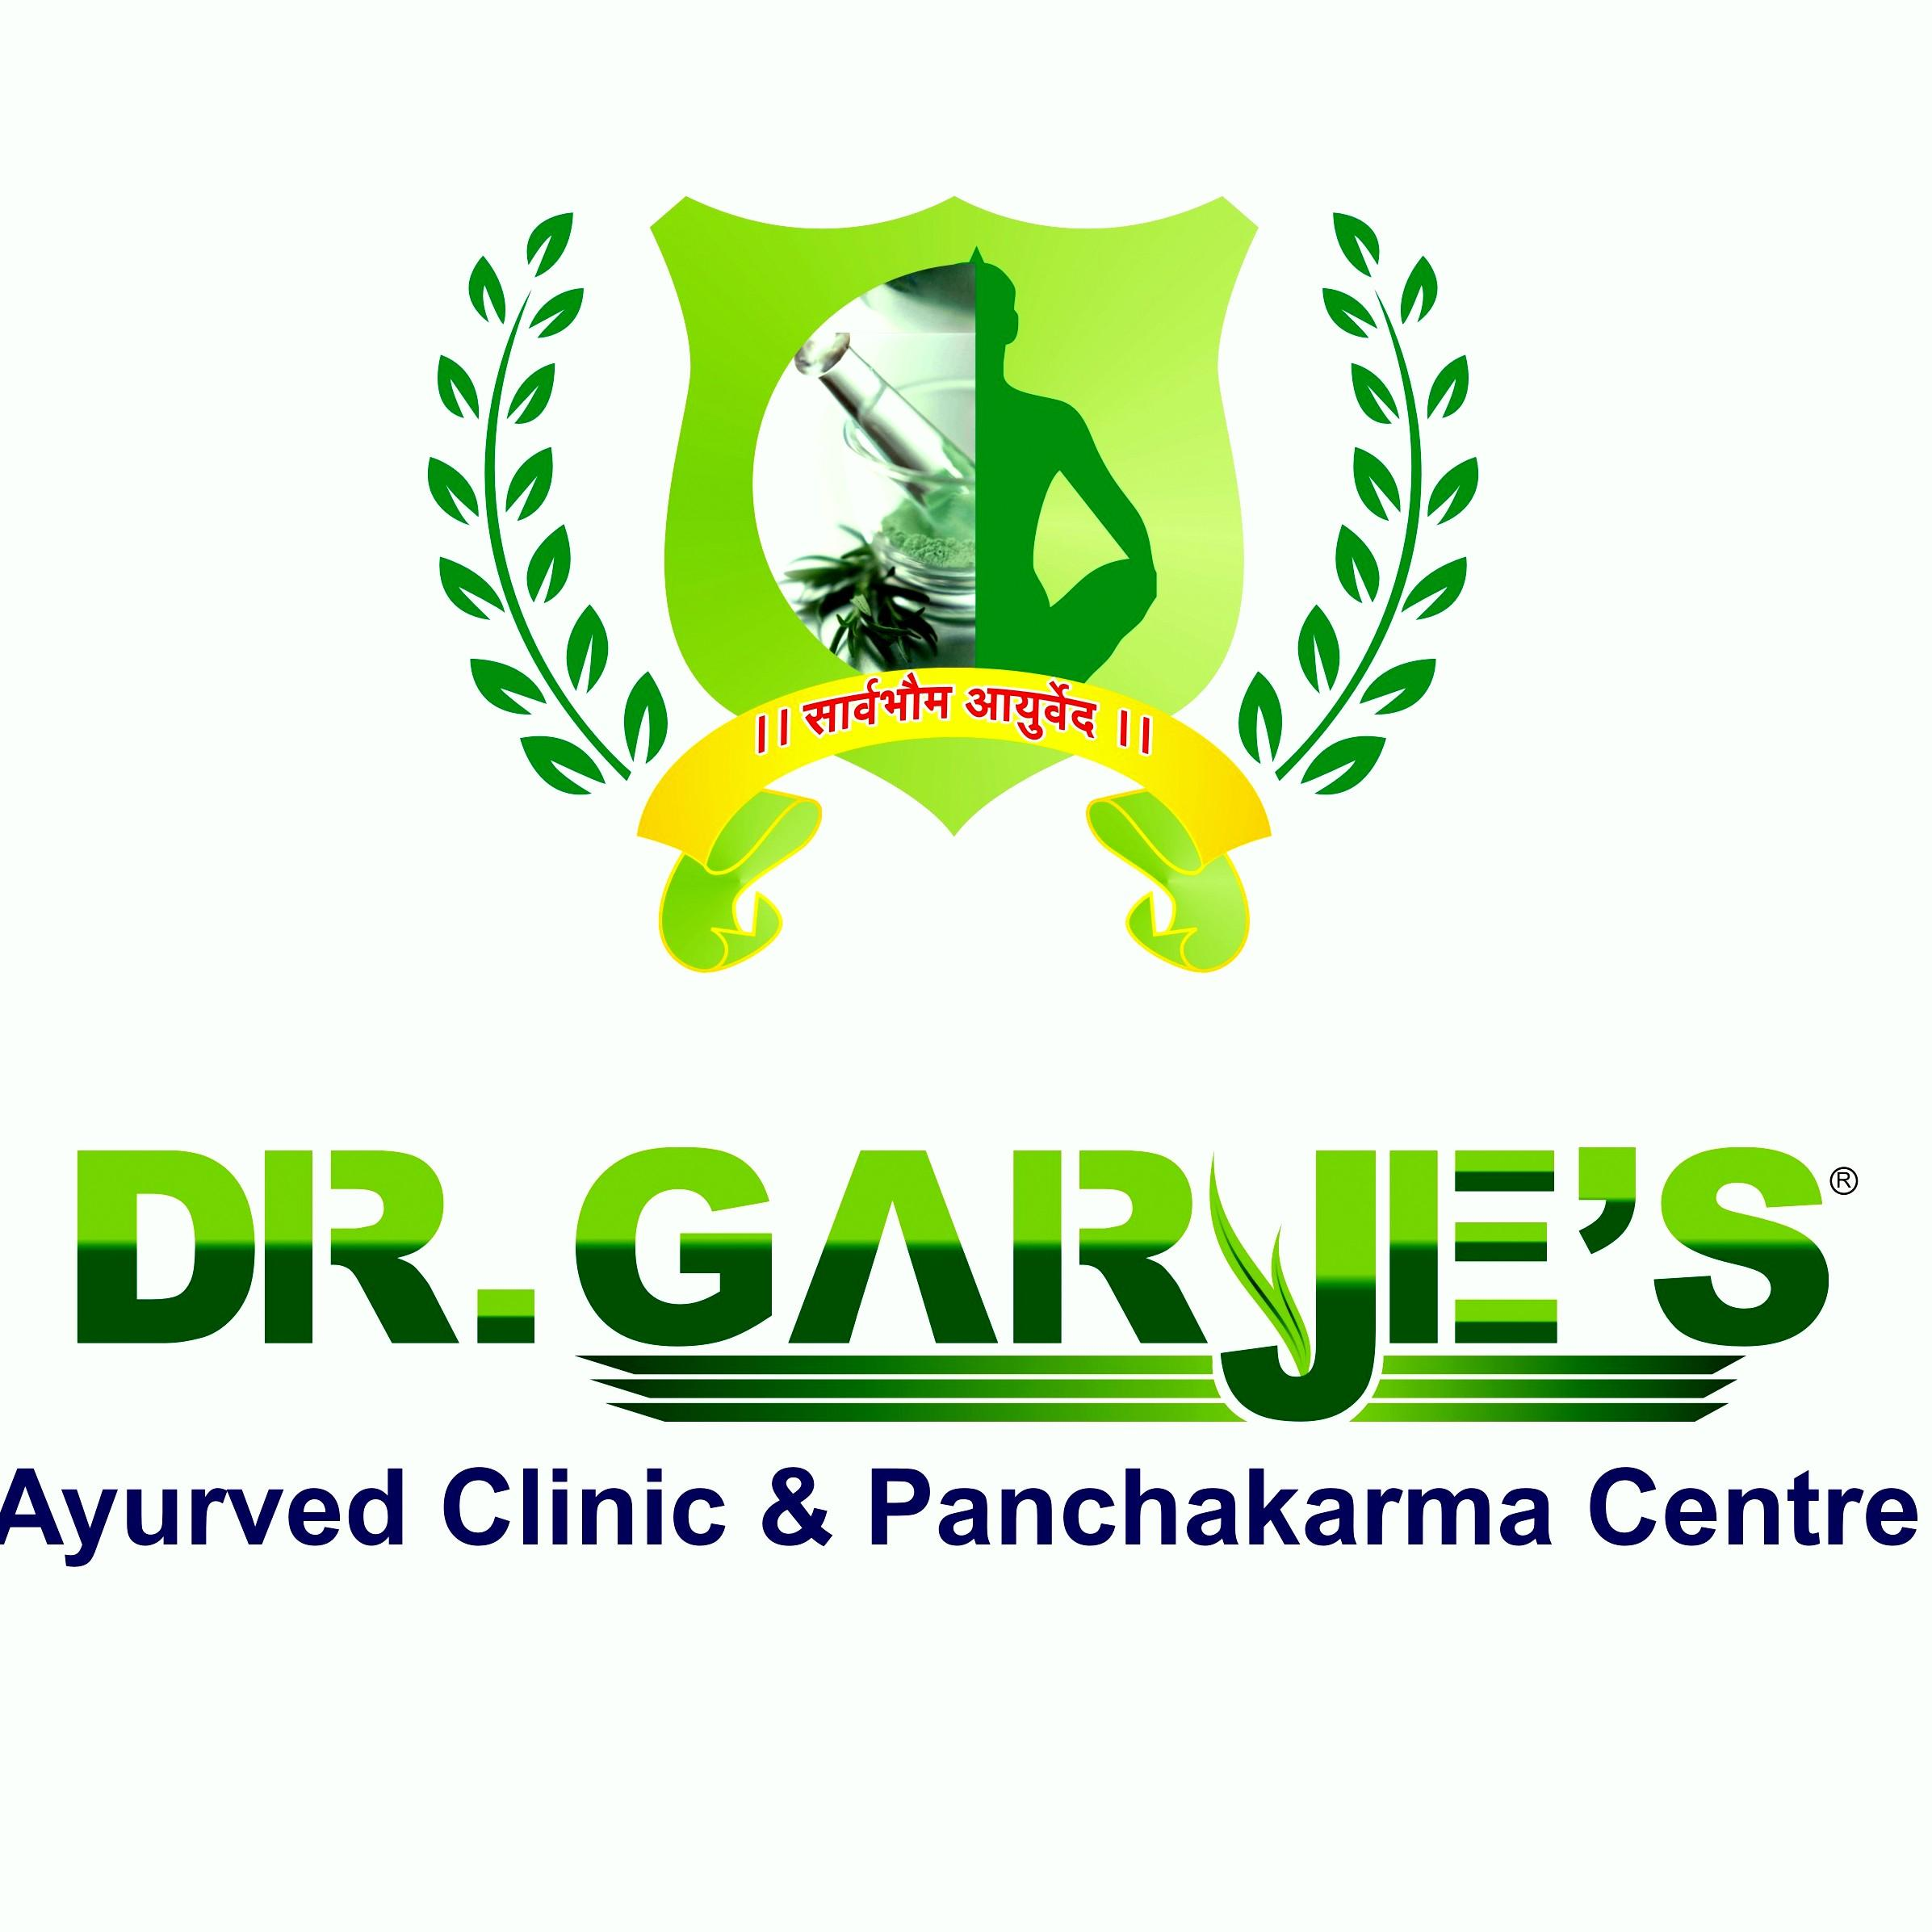 Dr. Garje's Ayurved Clinic and Panchakarma Centre